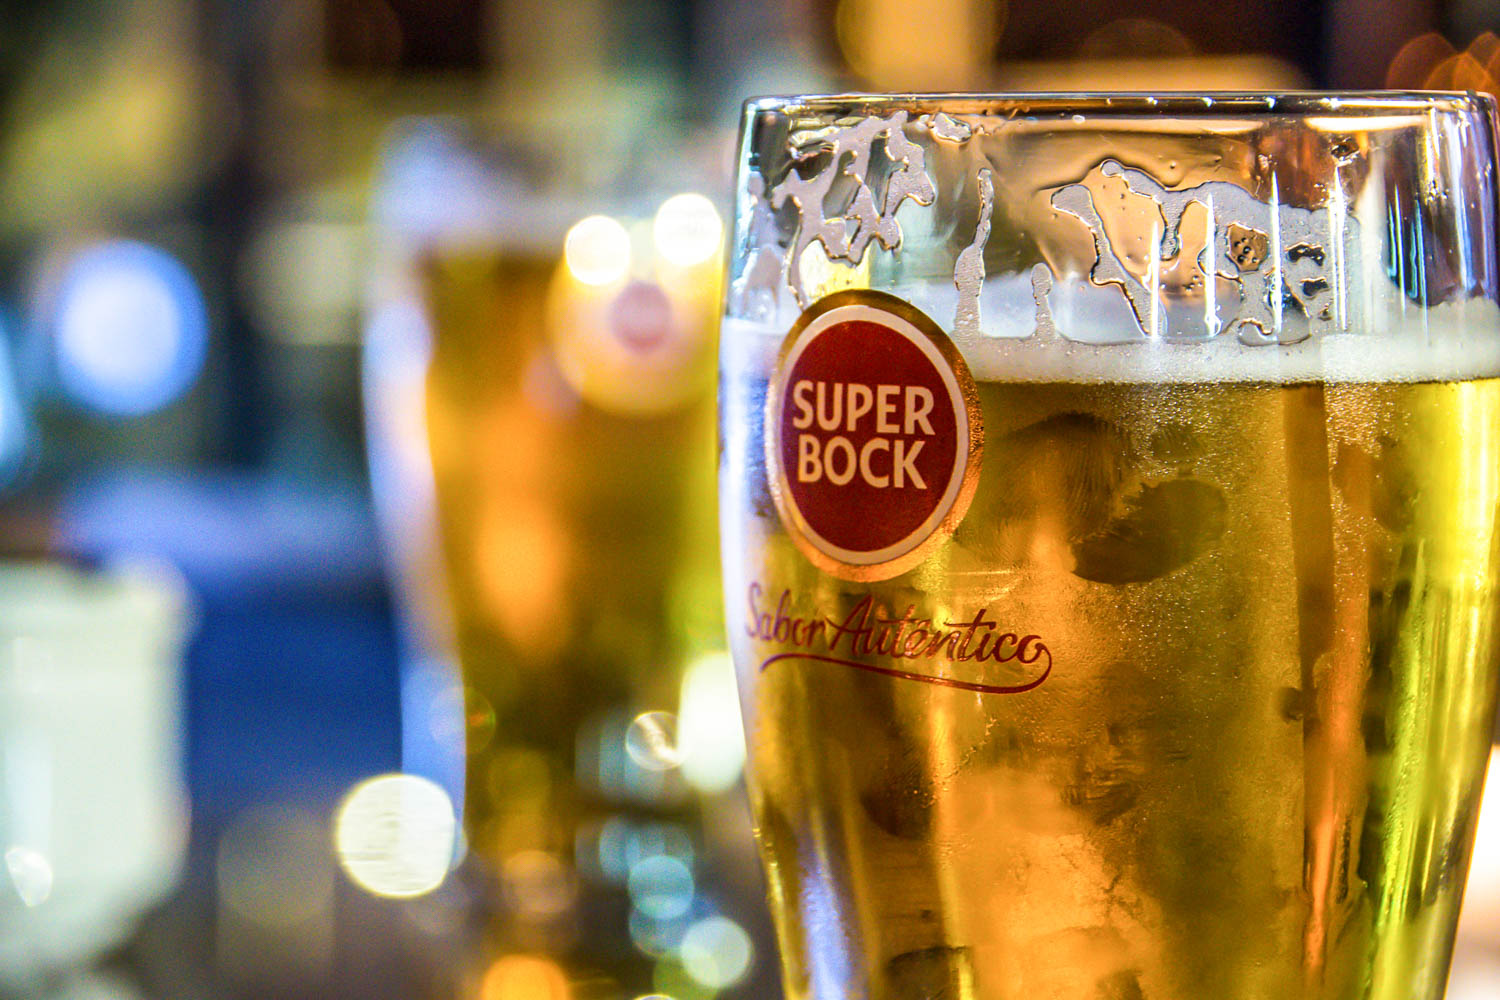 Super Bock is a local beer in Lisbon, discover the other Portuguese food you should eat.